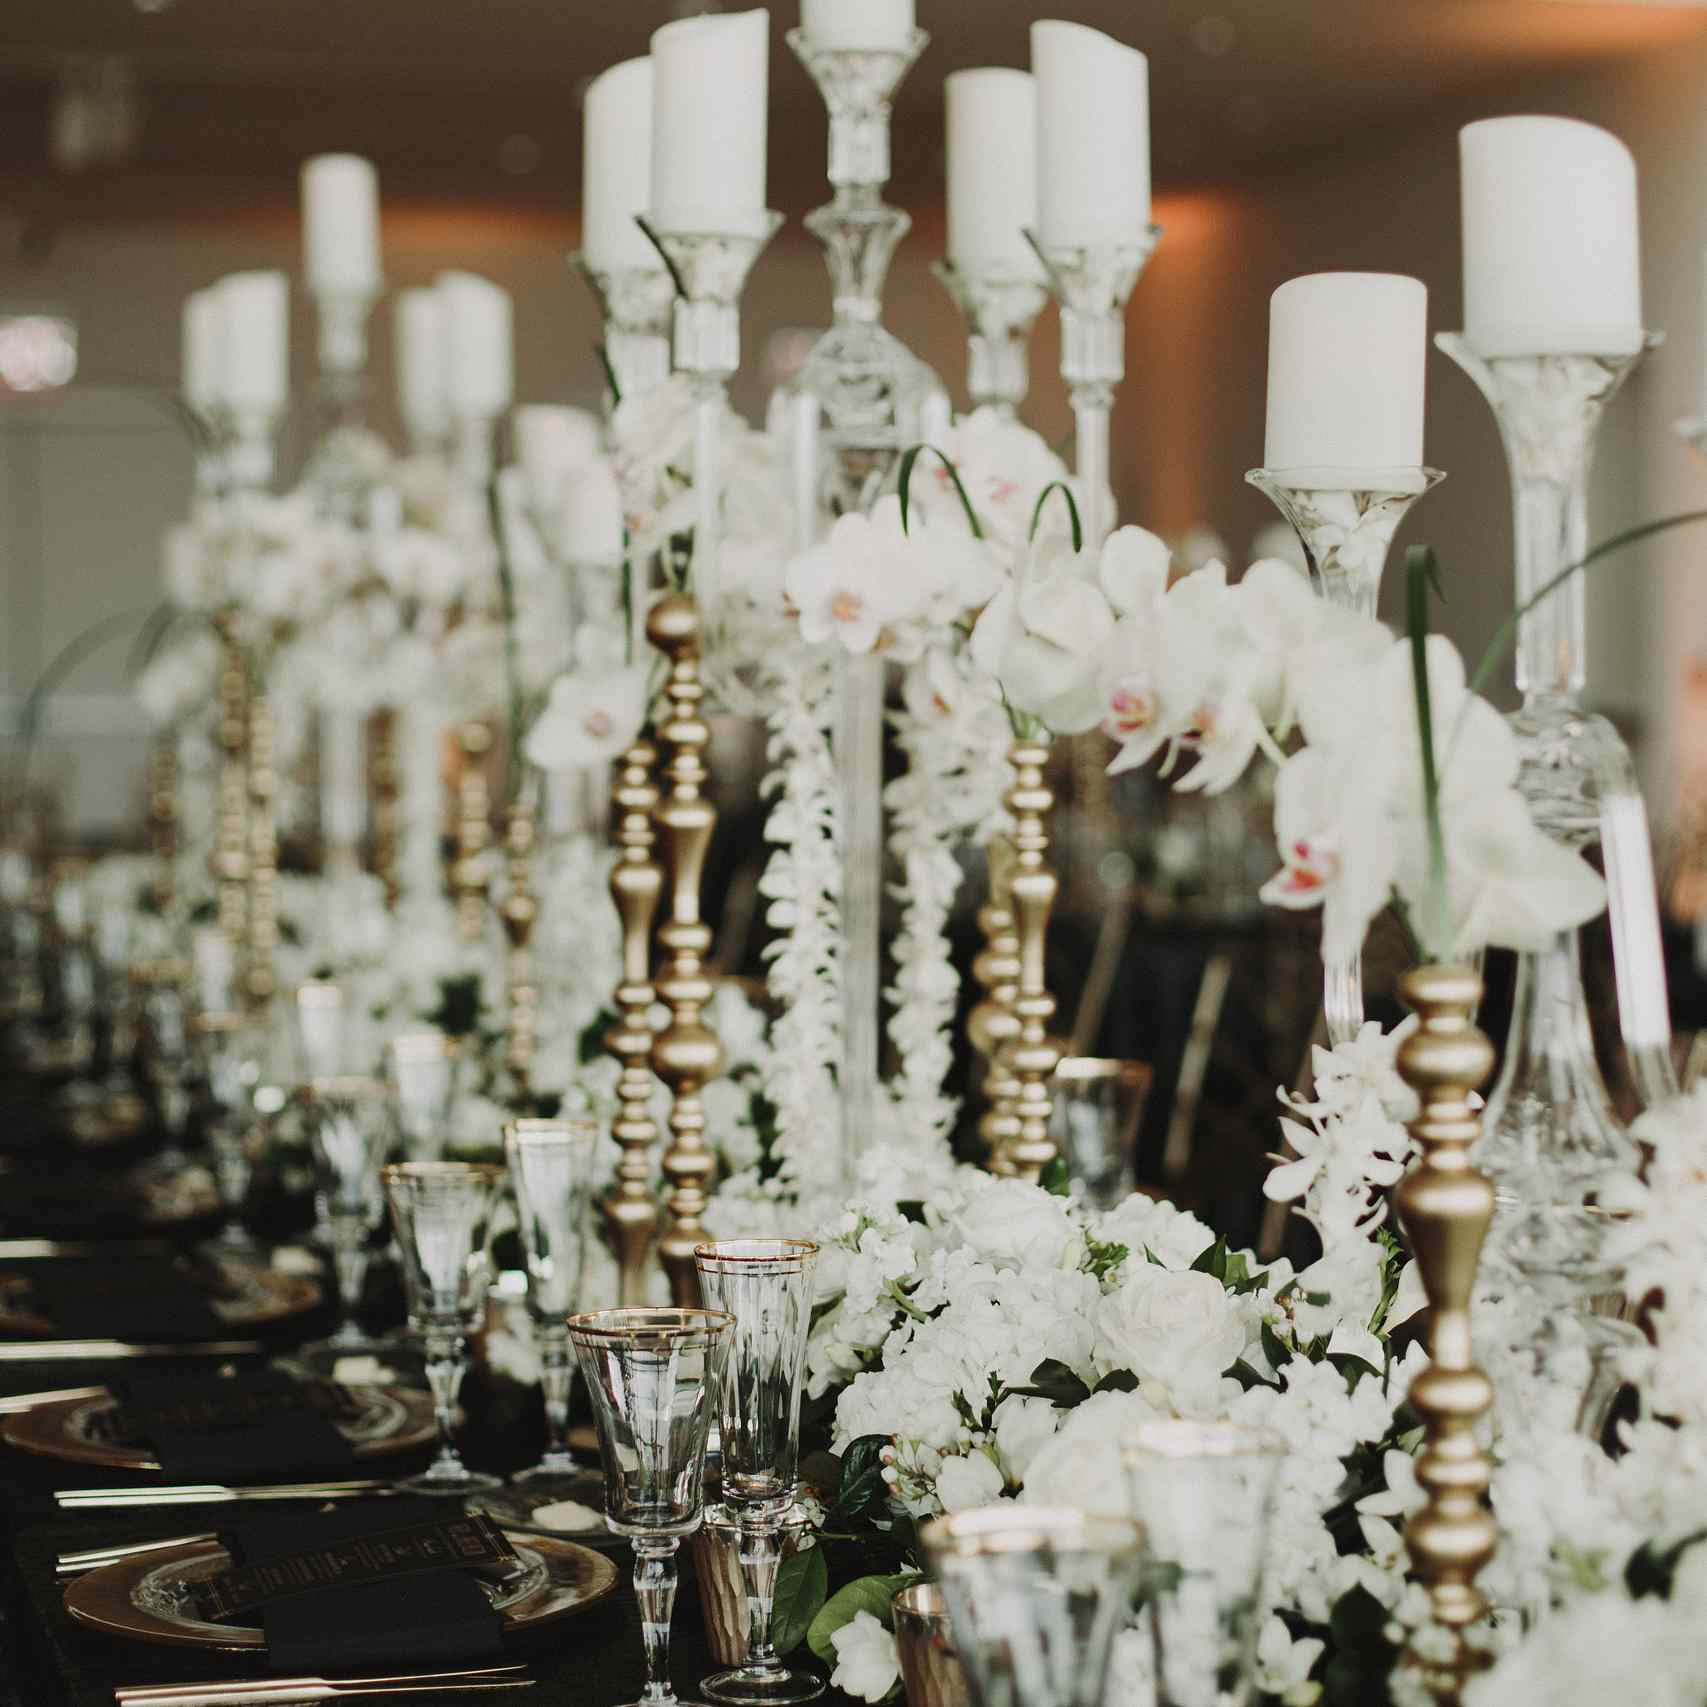 Black and gold tablescape with high candles